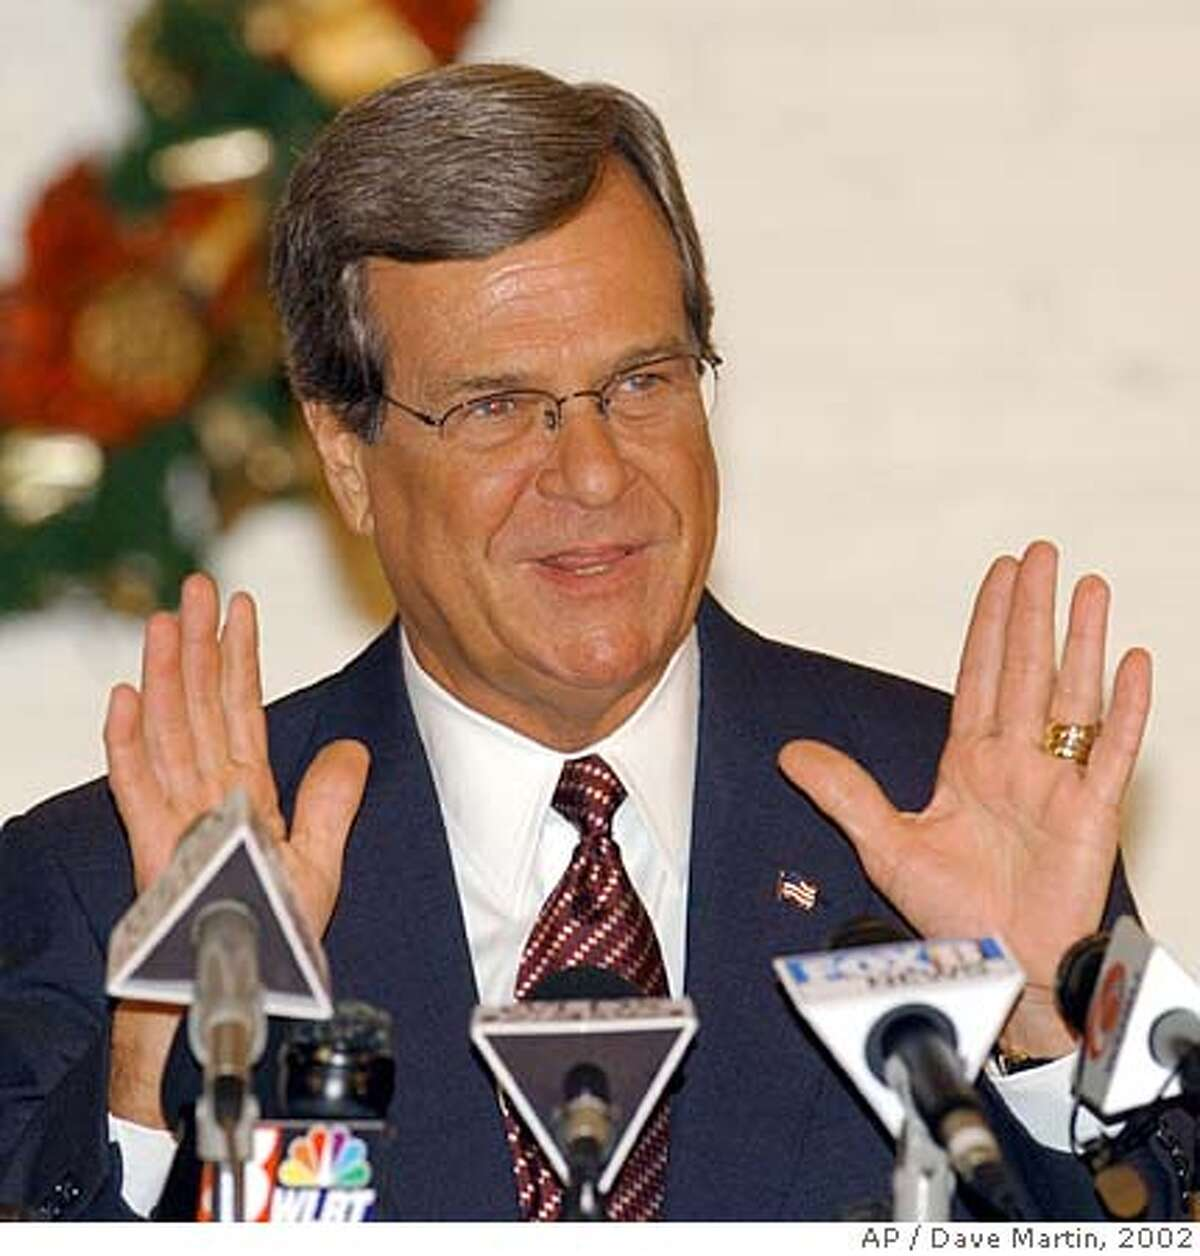 ALLU.S. Sen. Trent Lott, R-Miss., talks with reporters during a news conference in Pascagoula, Miss., on Friday, Dec. 13, 2002. Lott once again apologized for remarks he made during a birthday celebration for retiring U.S. Sen. Strom Thurmond. (AP Photo/Dave Martin) 1/1/03 Ran on: 04-03-2005 Sen. Trent Lott, R-Miss., has pledged to oppose any military base closure plans, particularly in Mississippi. CAT